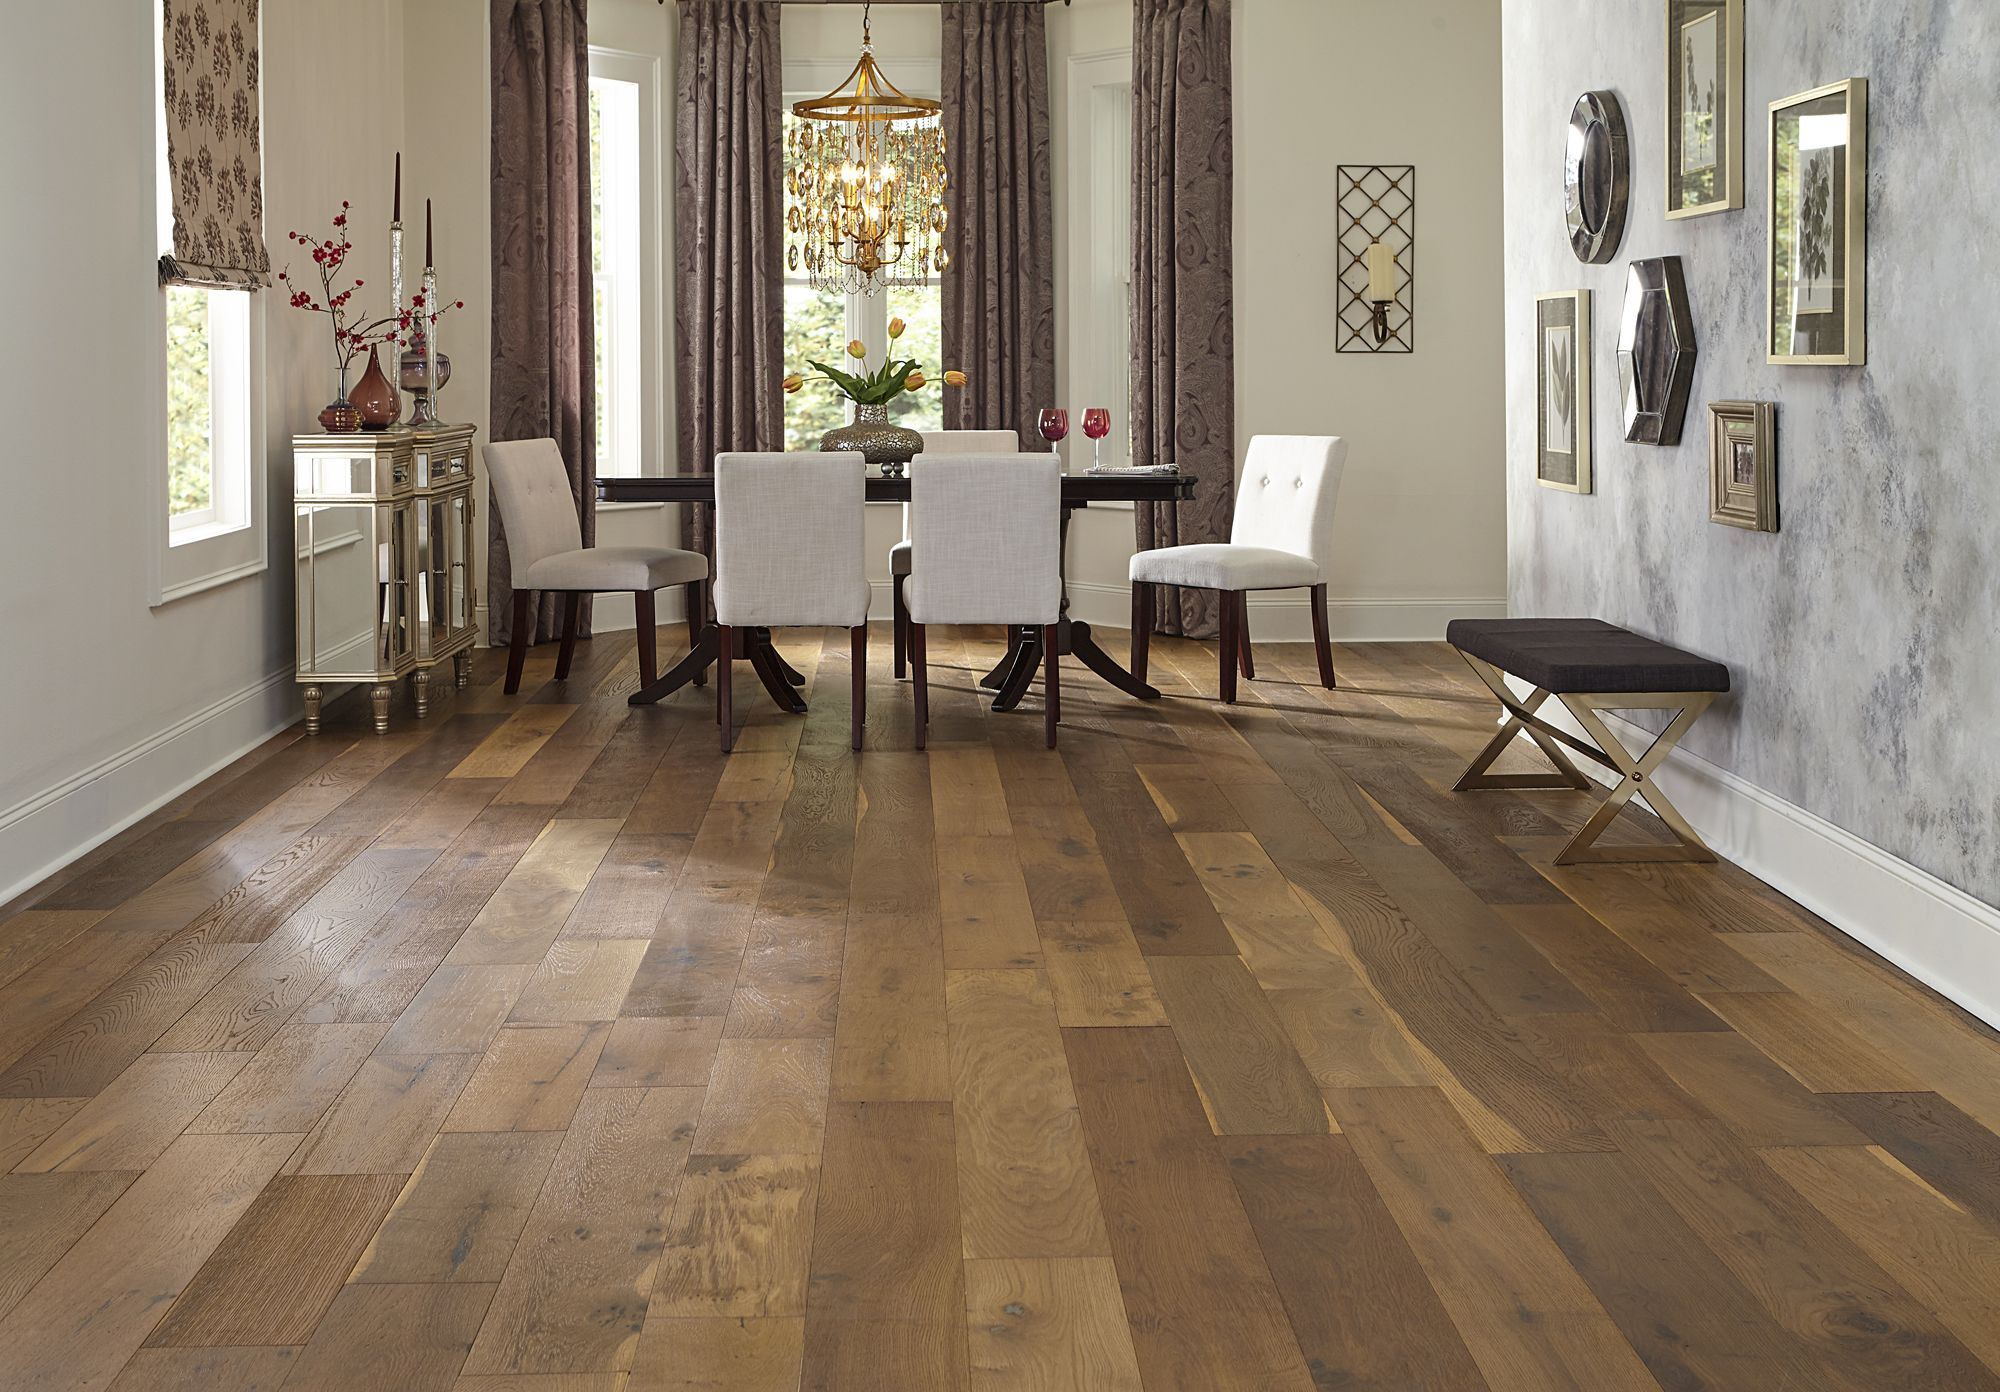 how do i clean engineered hardwood floors of 7 1 2 wide planks and a rustic look bellawood willow manor oak has with 7 1 2 wide planks and a rustic look bellawood willow manor oak has a storied old world appearance